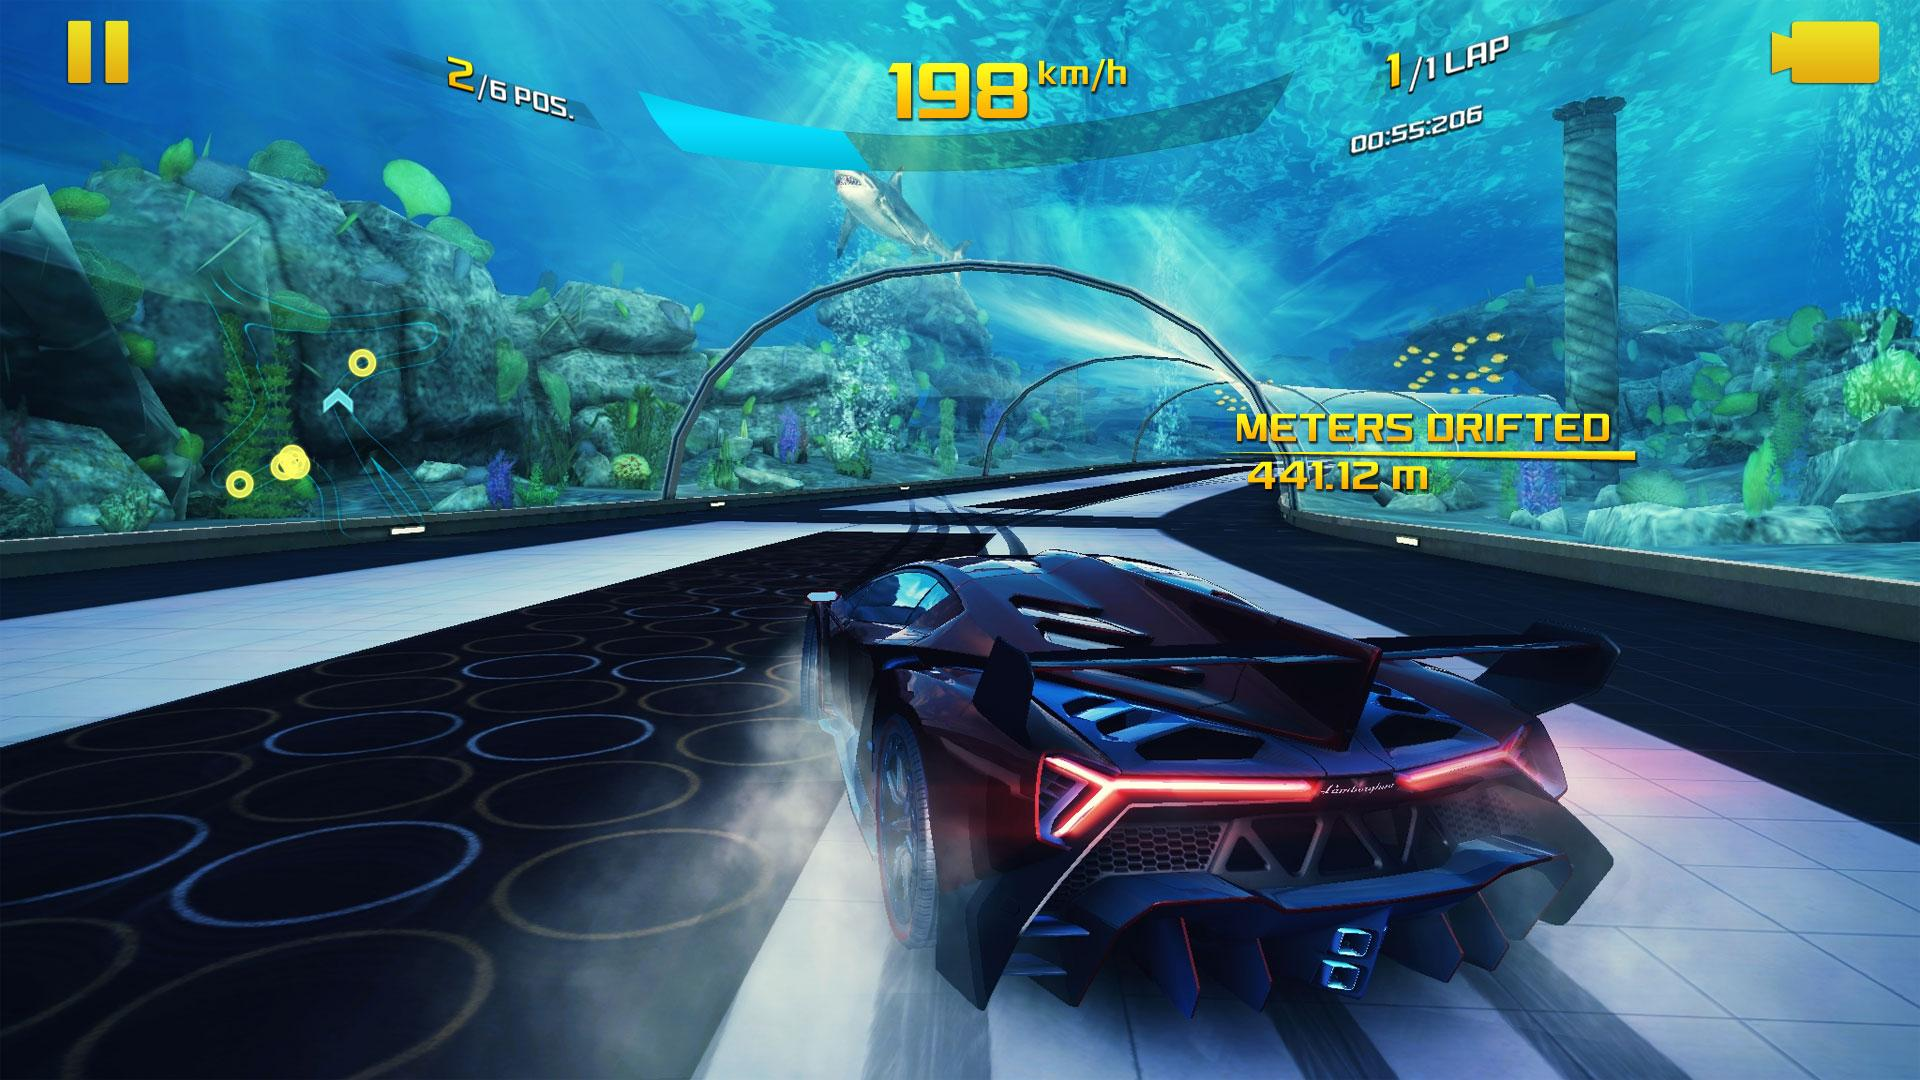 mfTVn6RMZs8sTun7ncQHAe - The best free Android games 2018